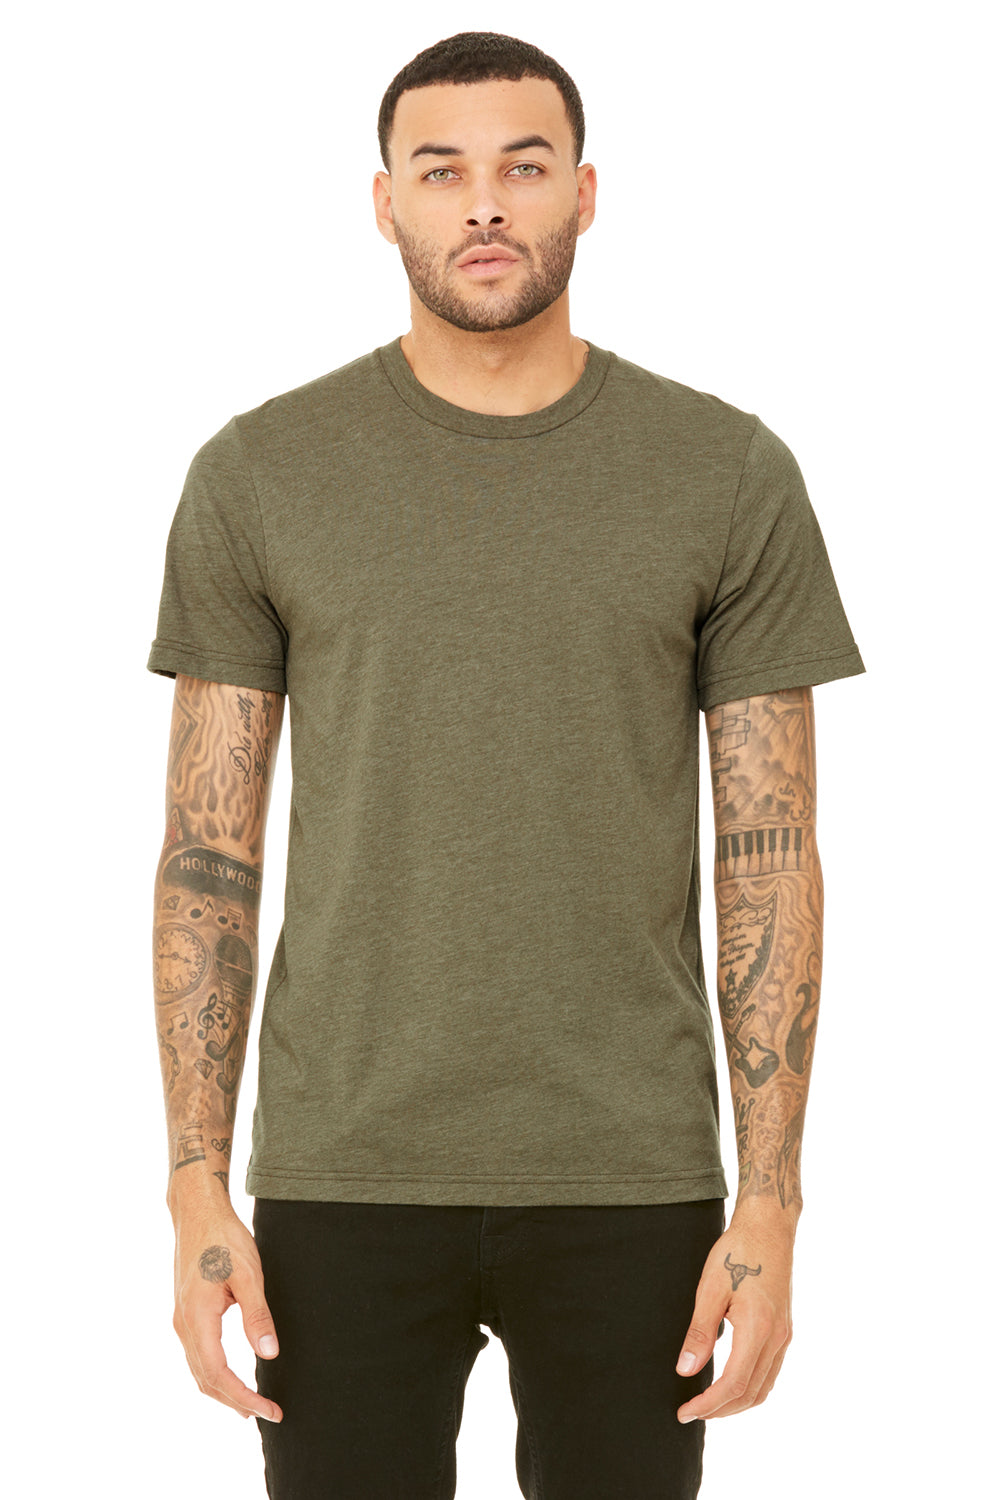 Bella + Canvas 3001C Mens Jersey Short Sleeve Crewneck T-Shirt Heather Olive Green Front